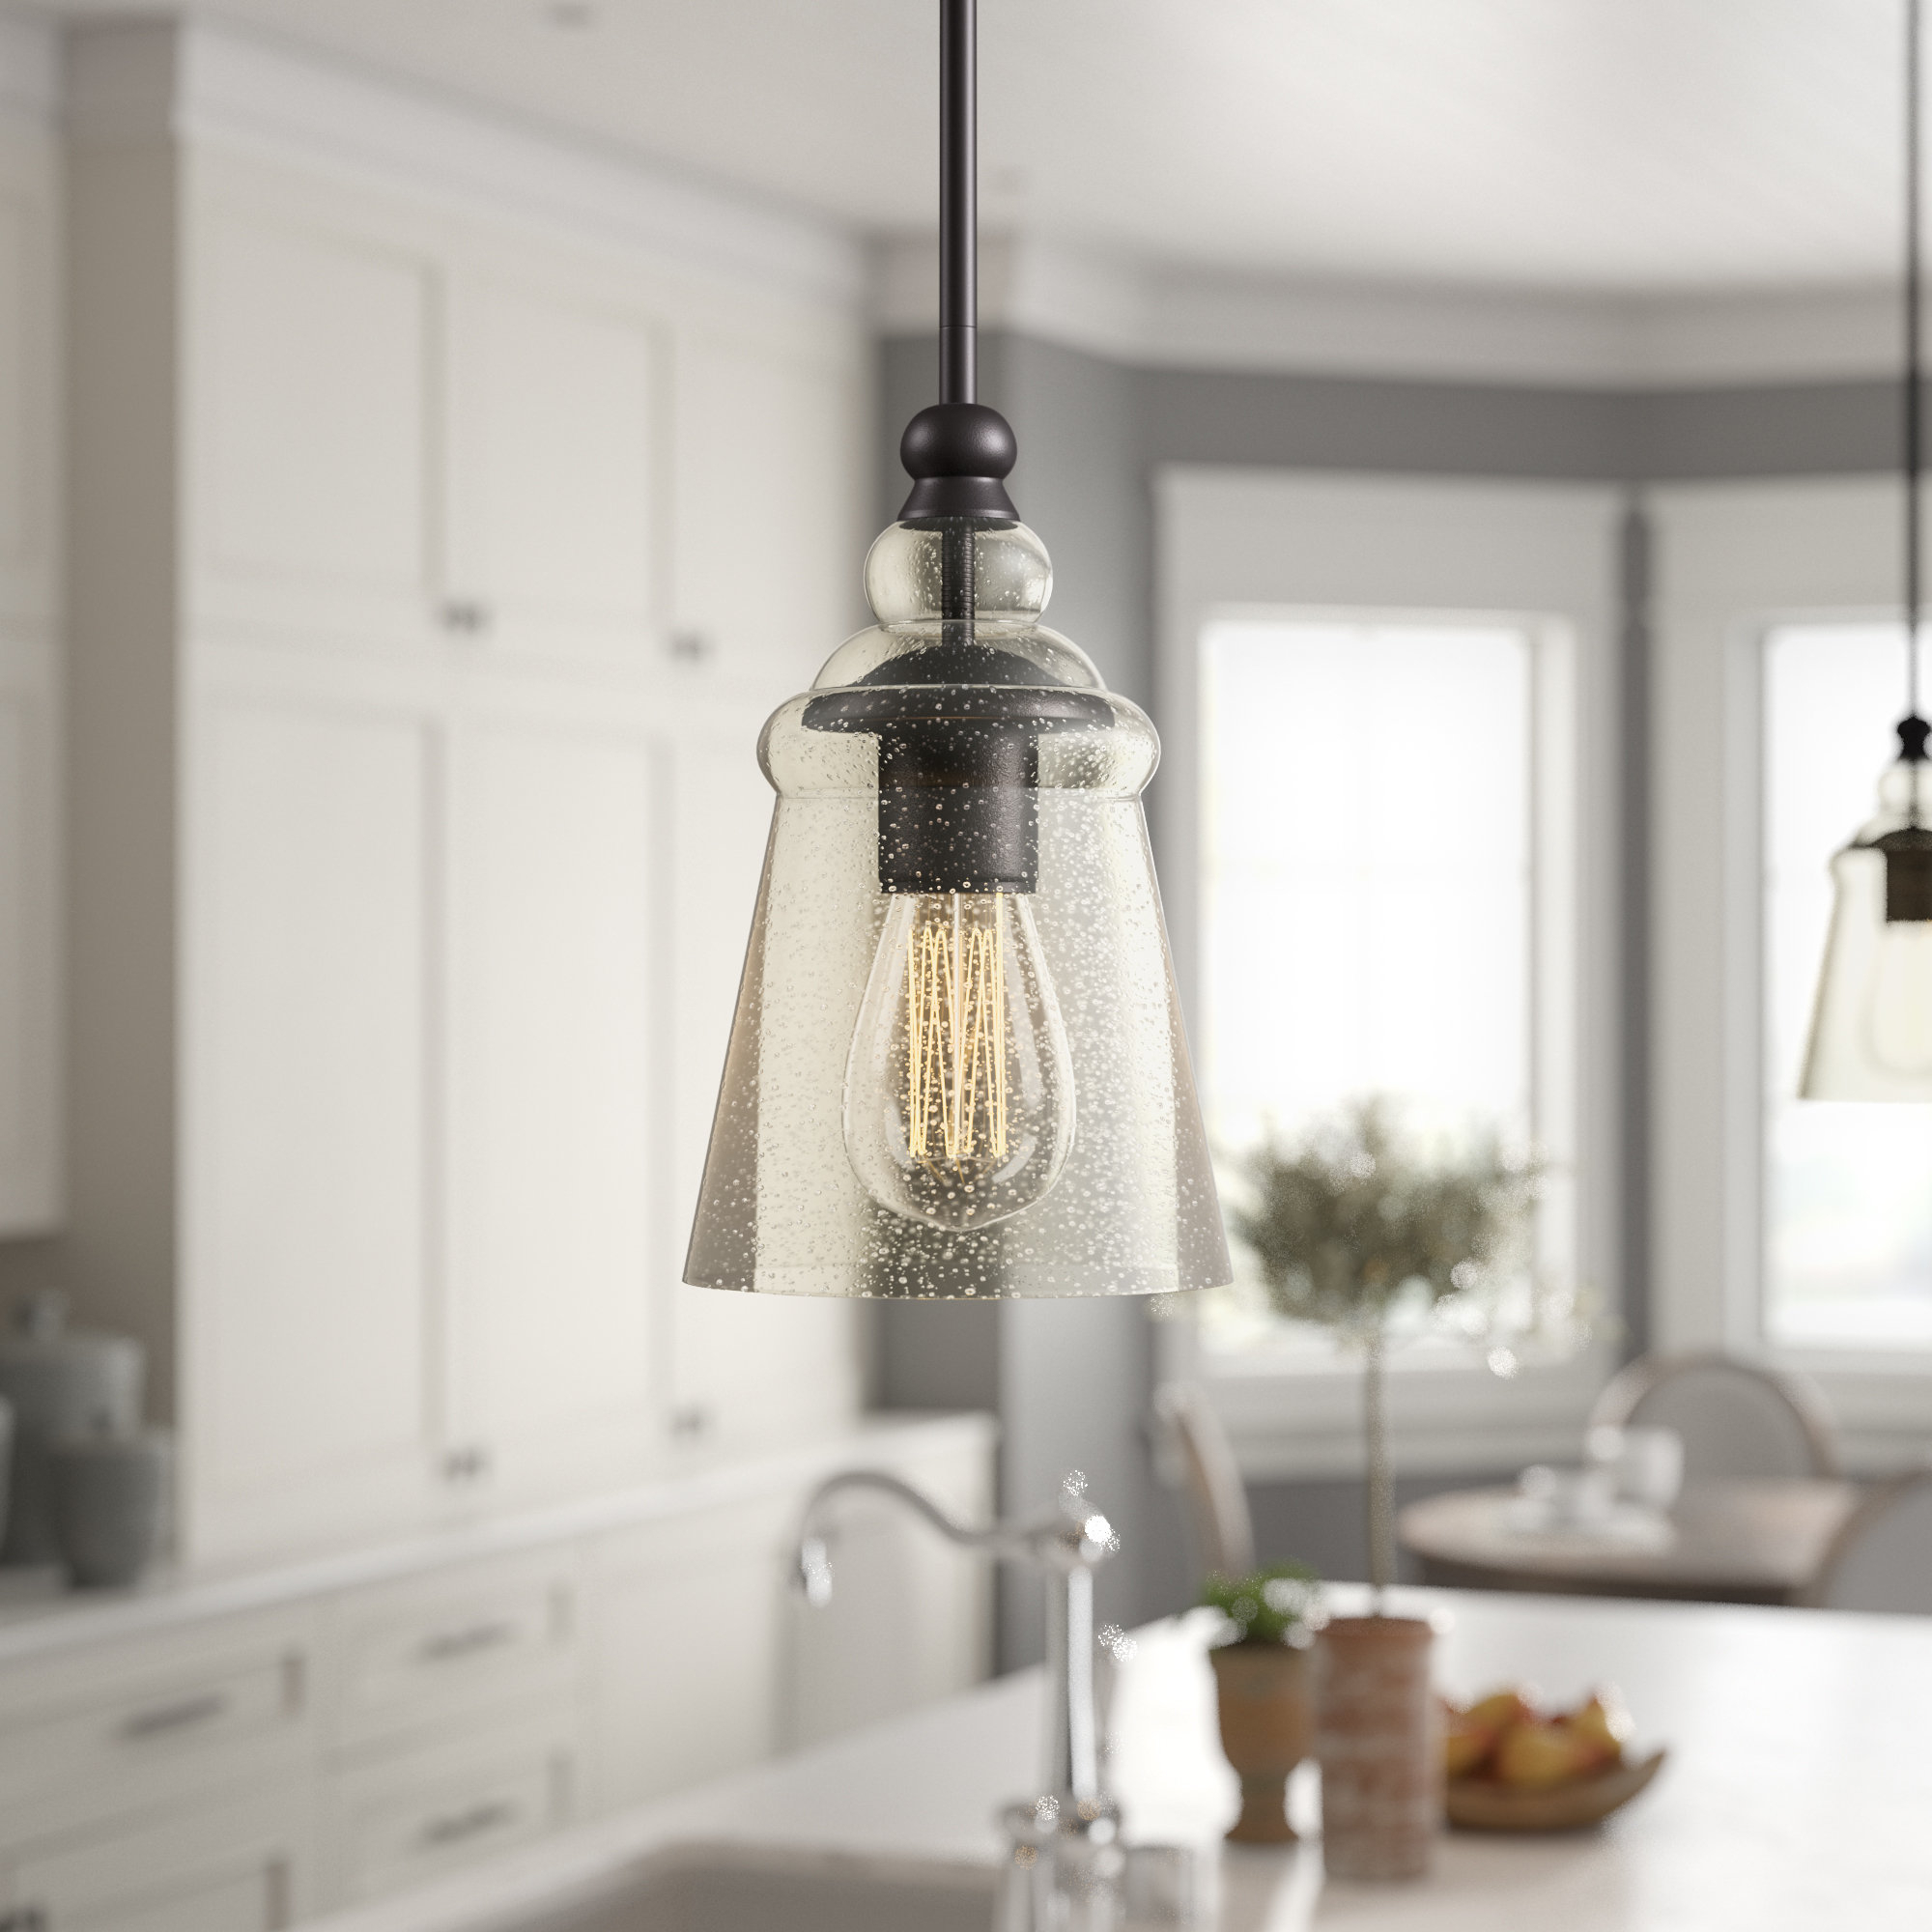 Sargent 1 Light Bell Pendant With Regard To Most Current Carey 1 Light Single Bell Pendants (View 23 of 25)